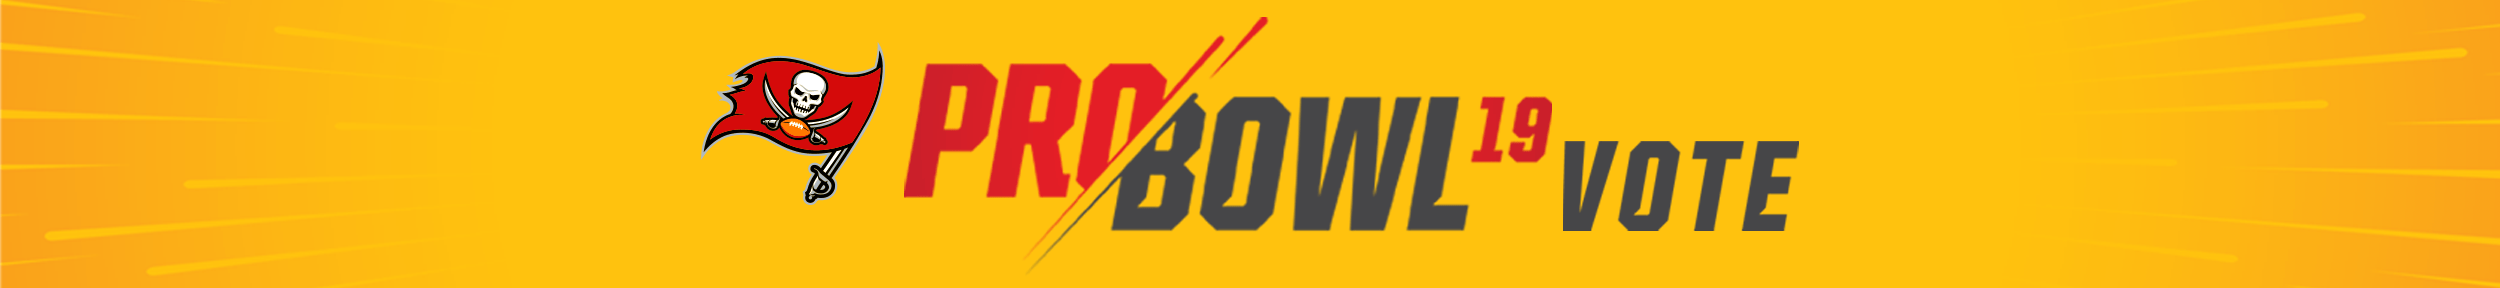 Vote your favorite Buccaneers into the Pro Bowl!